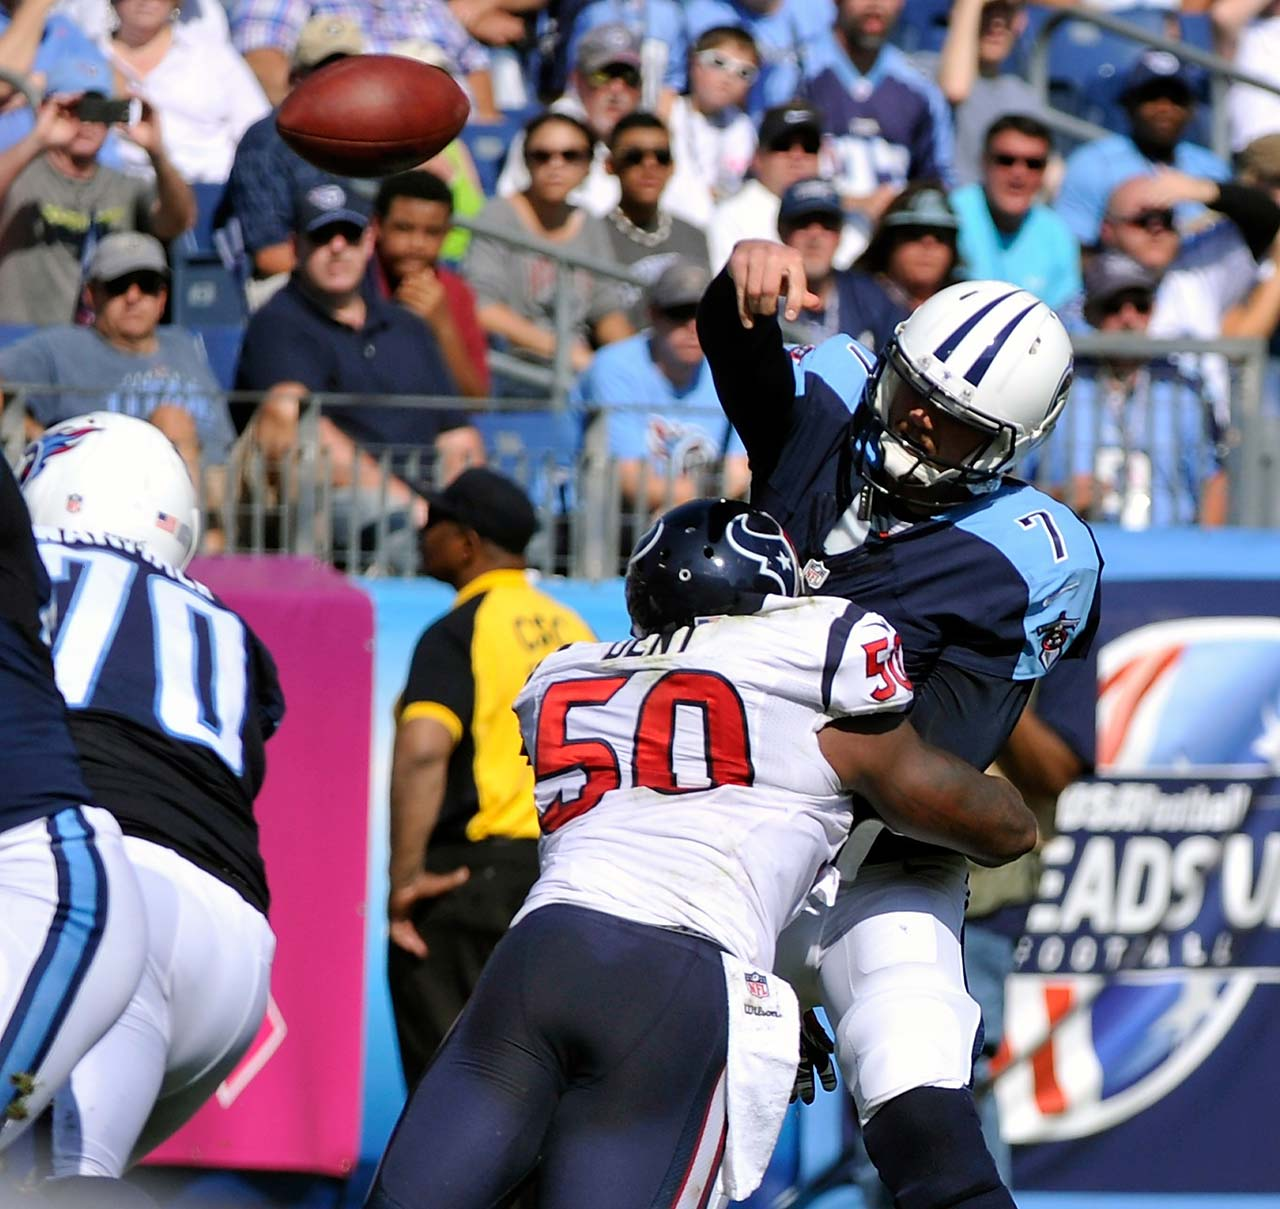 Rookie quarterback Zach Mettenberger of the Tennessee Titans is hit by Akeem Dent of the Houston Texans.